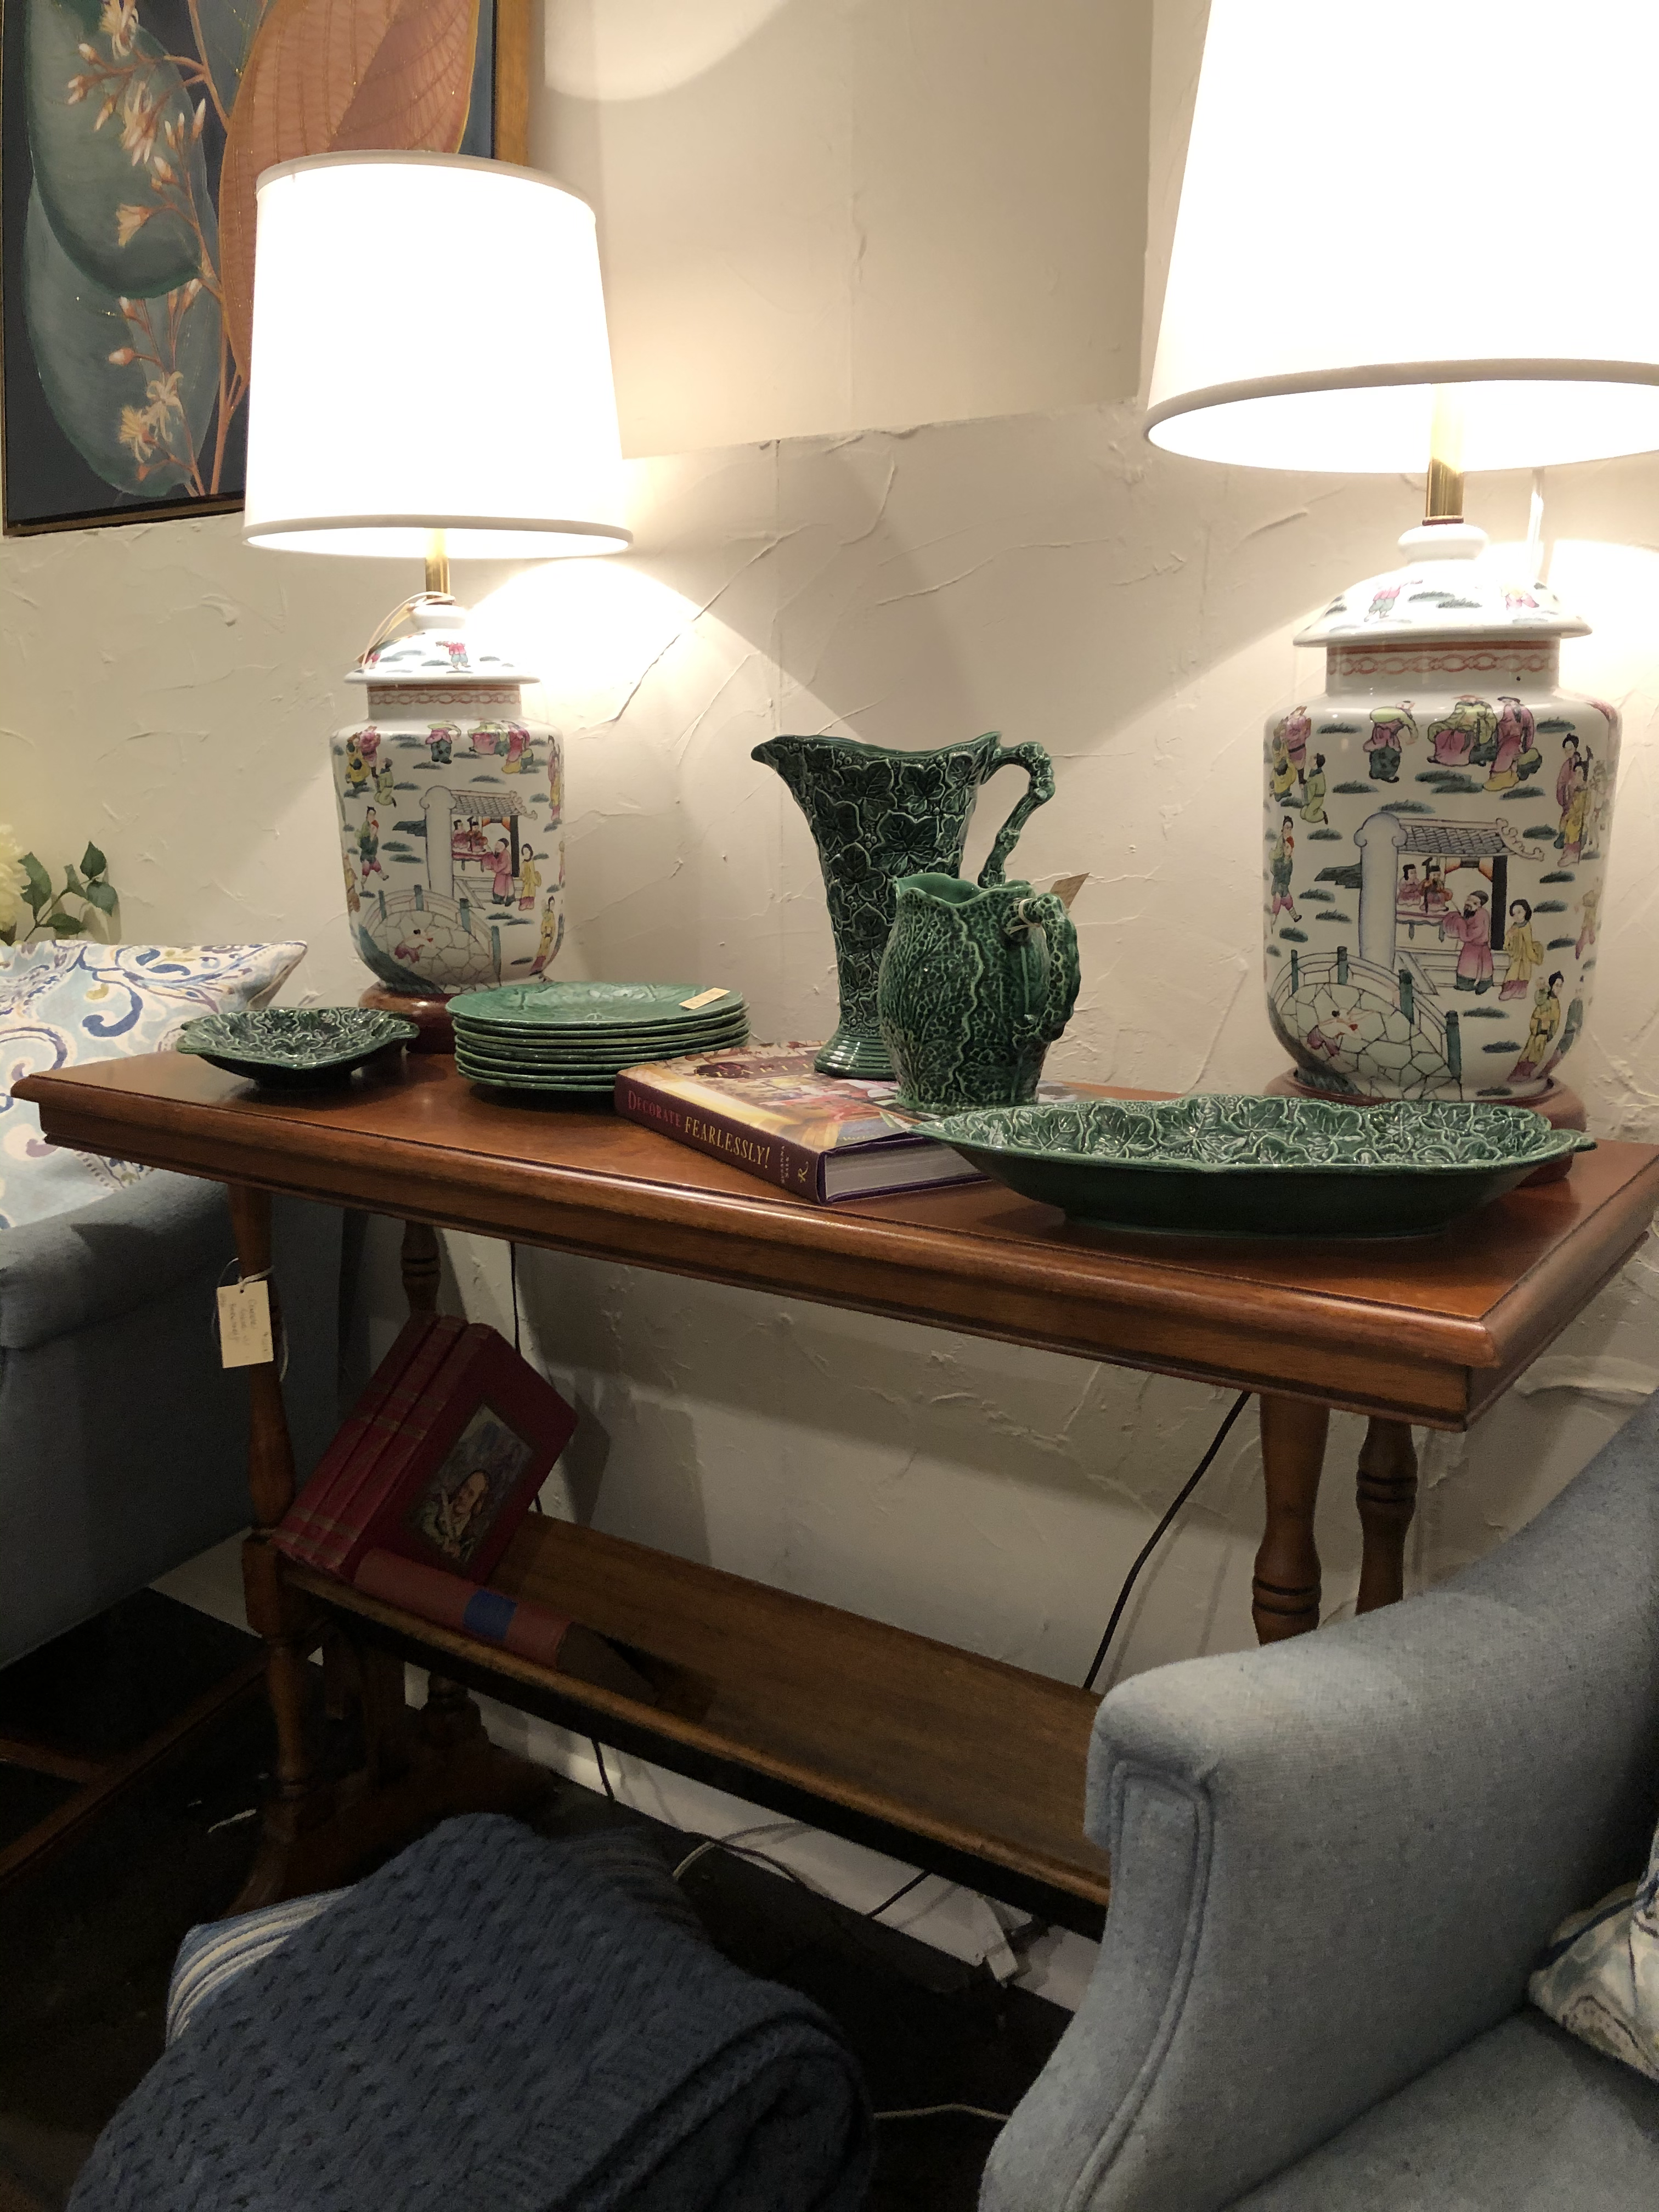 Vintage Console Table with bookshelf